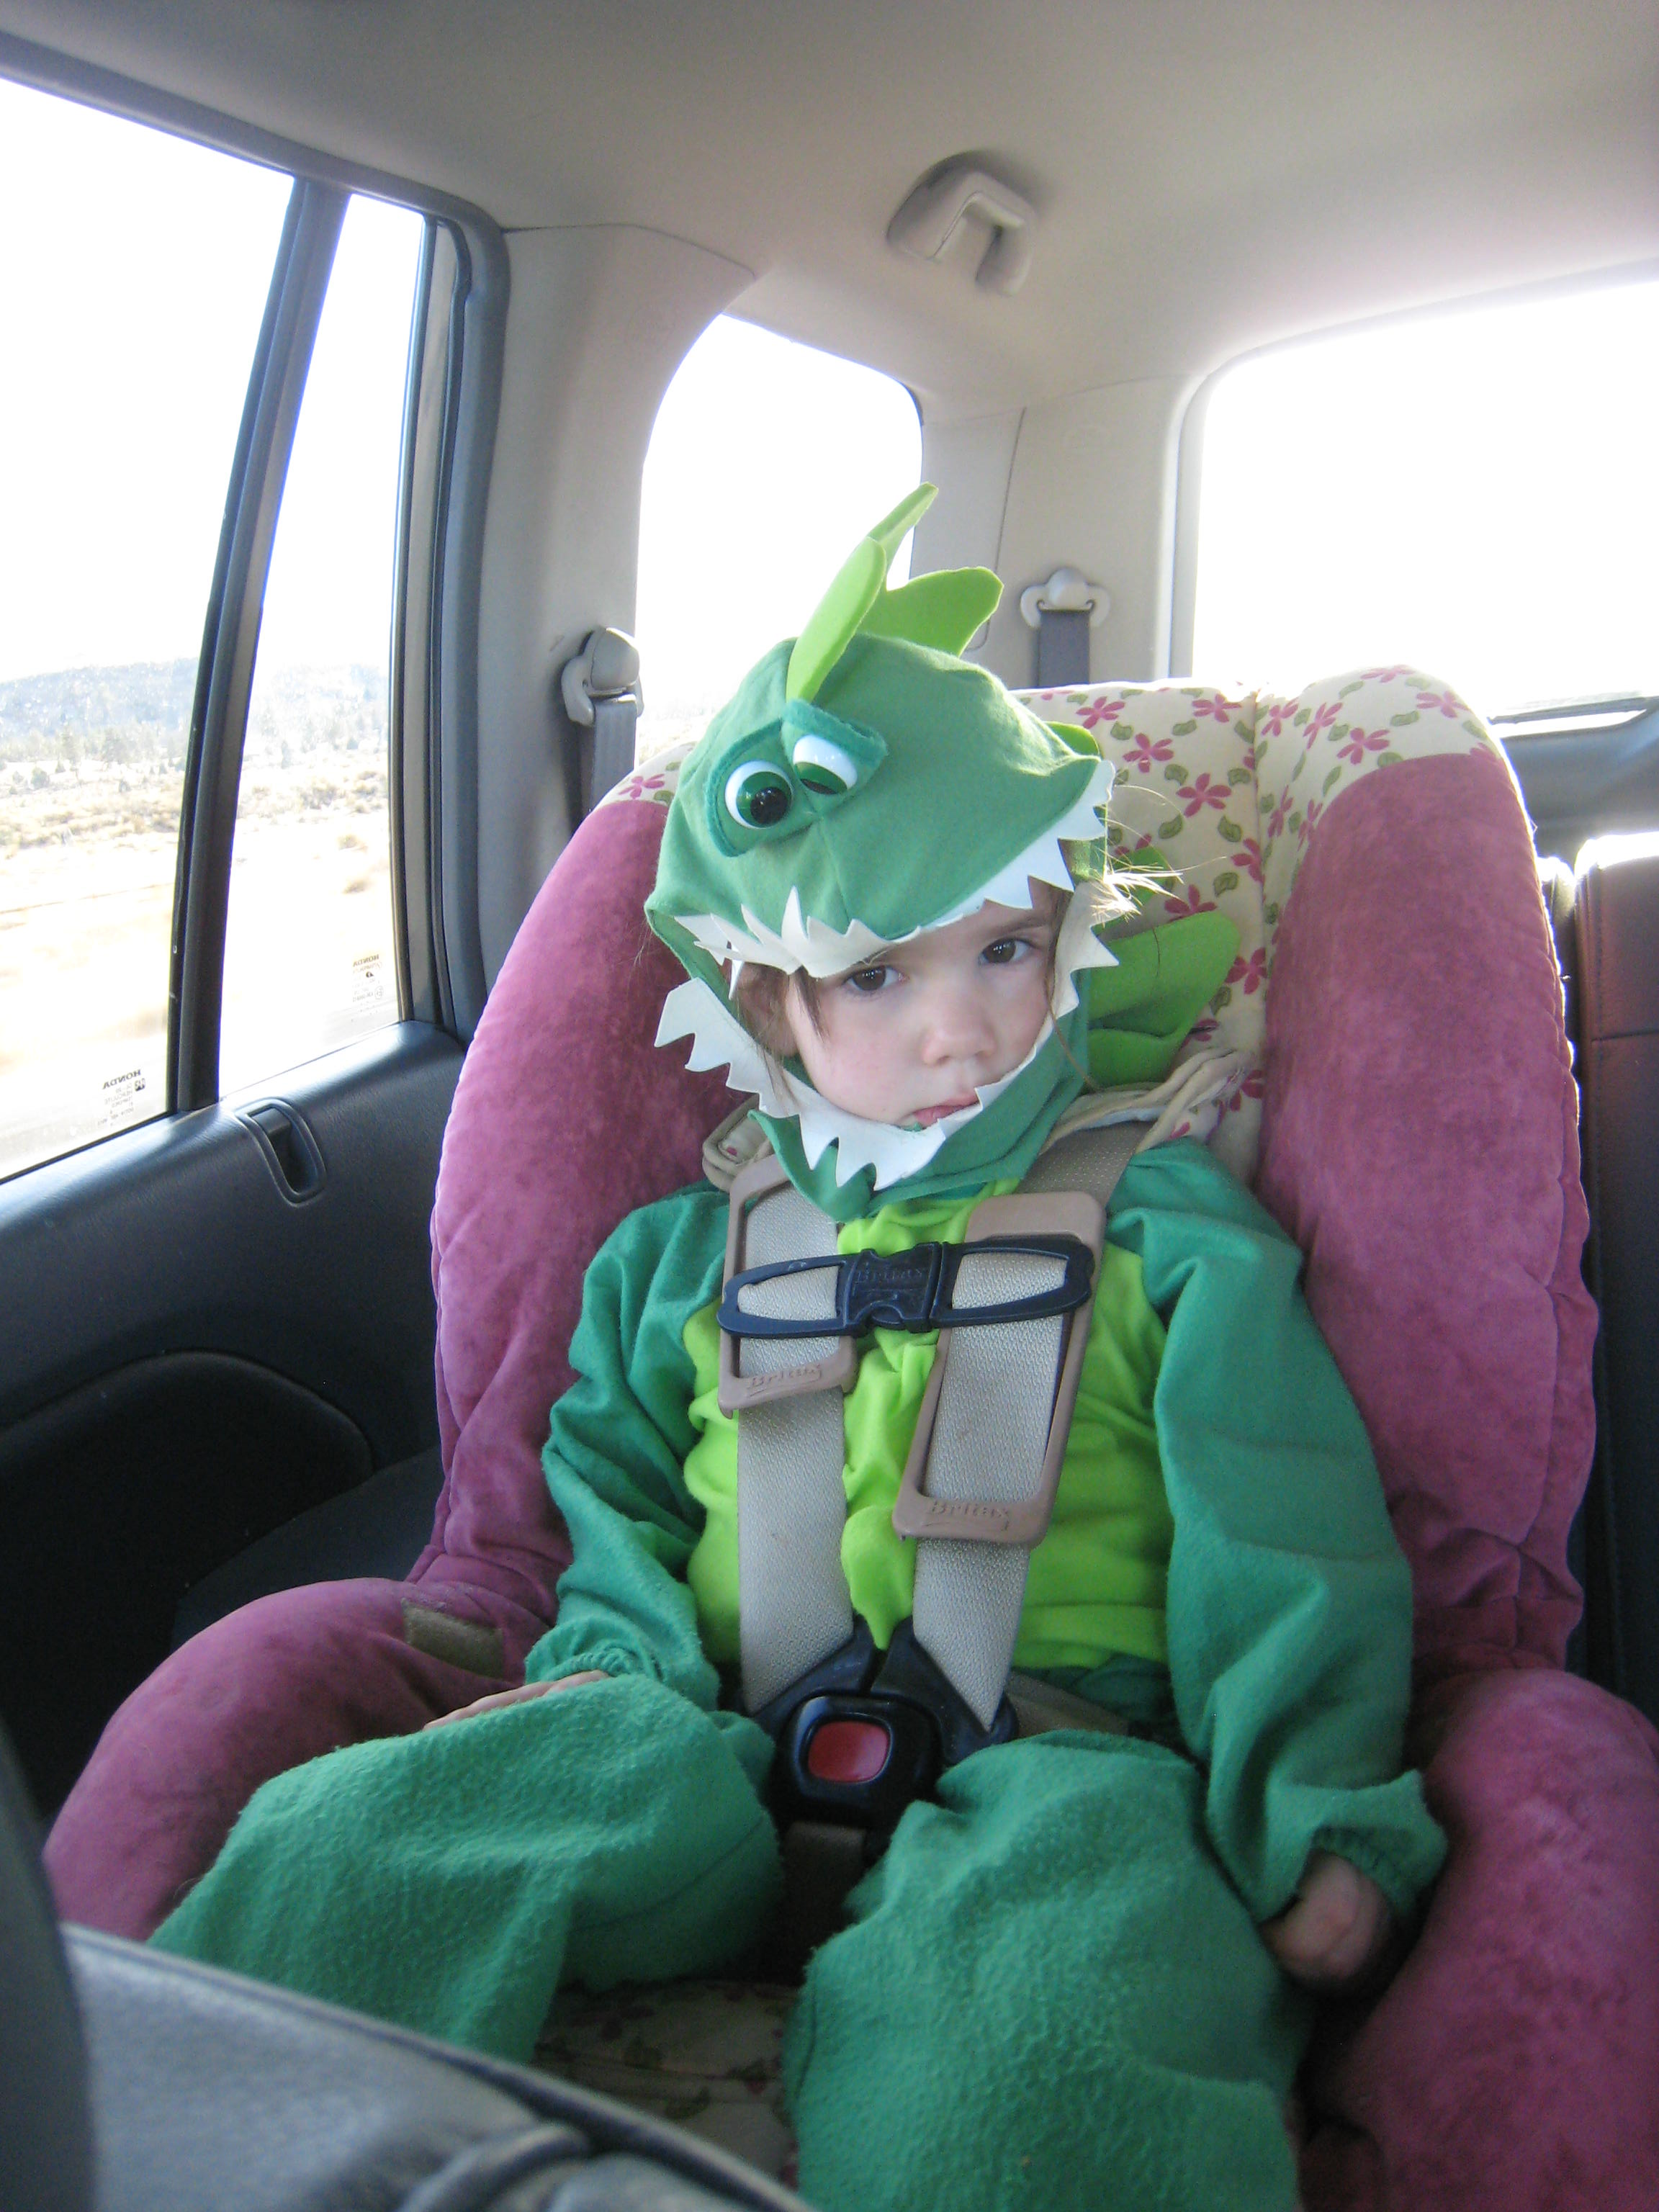 dragon costume in the car; podcasts article